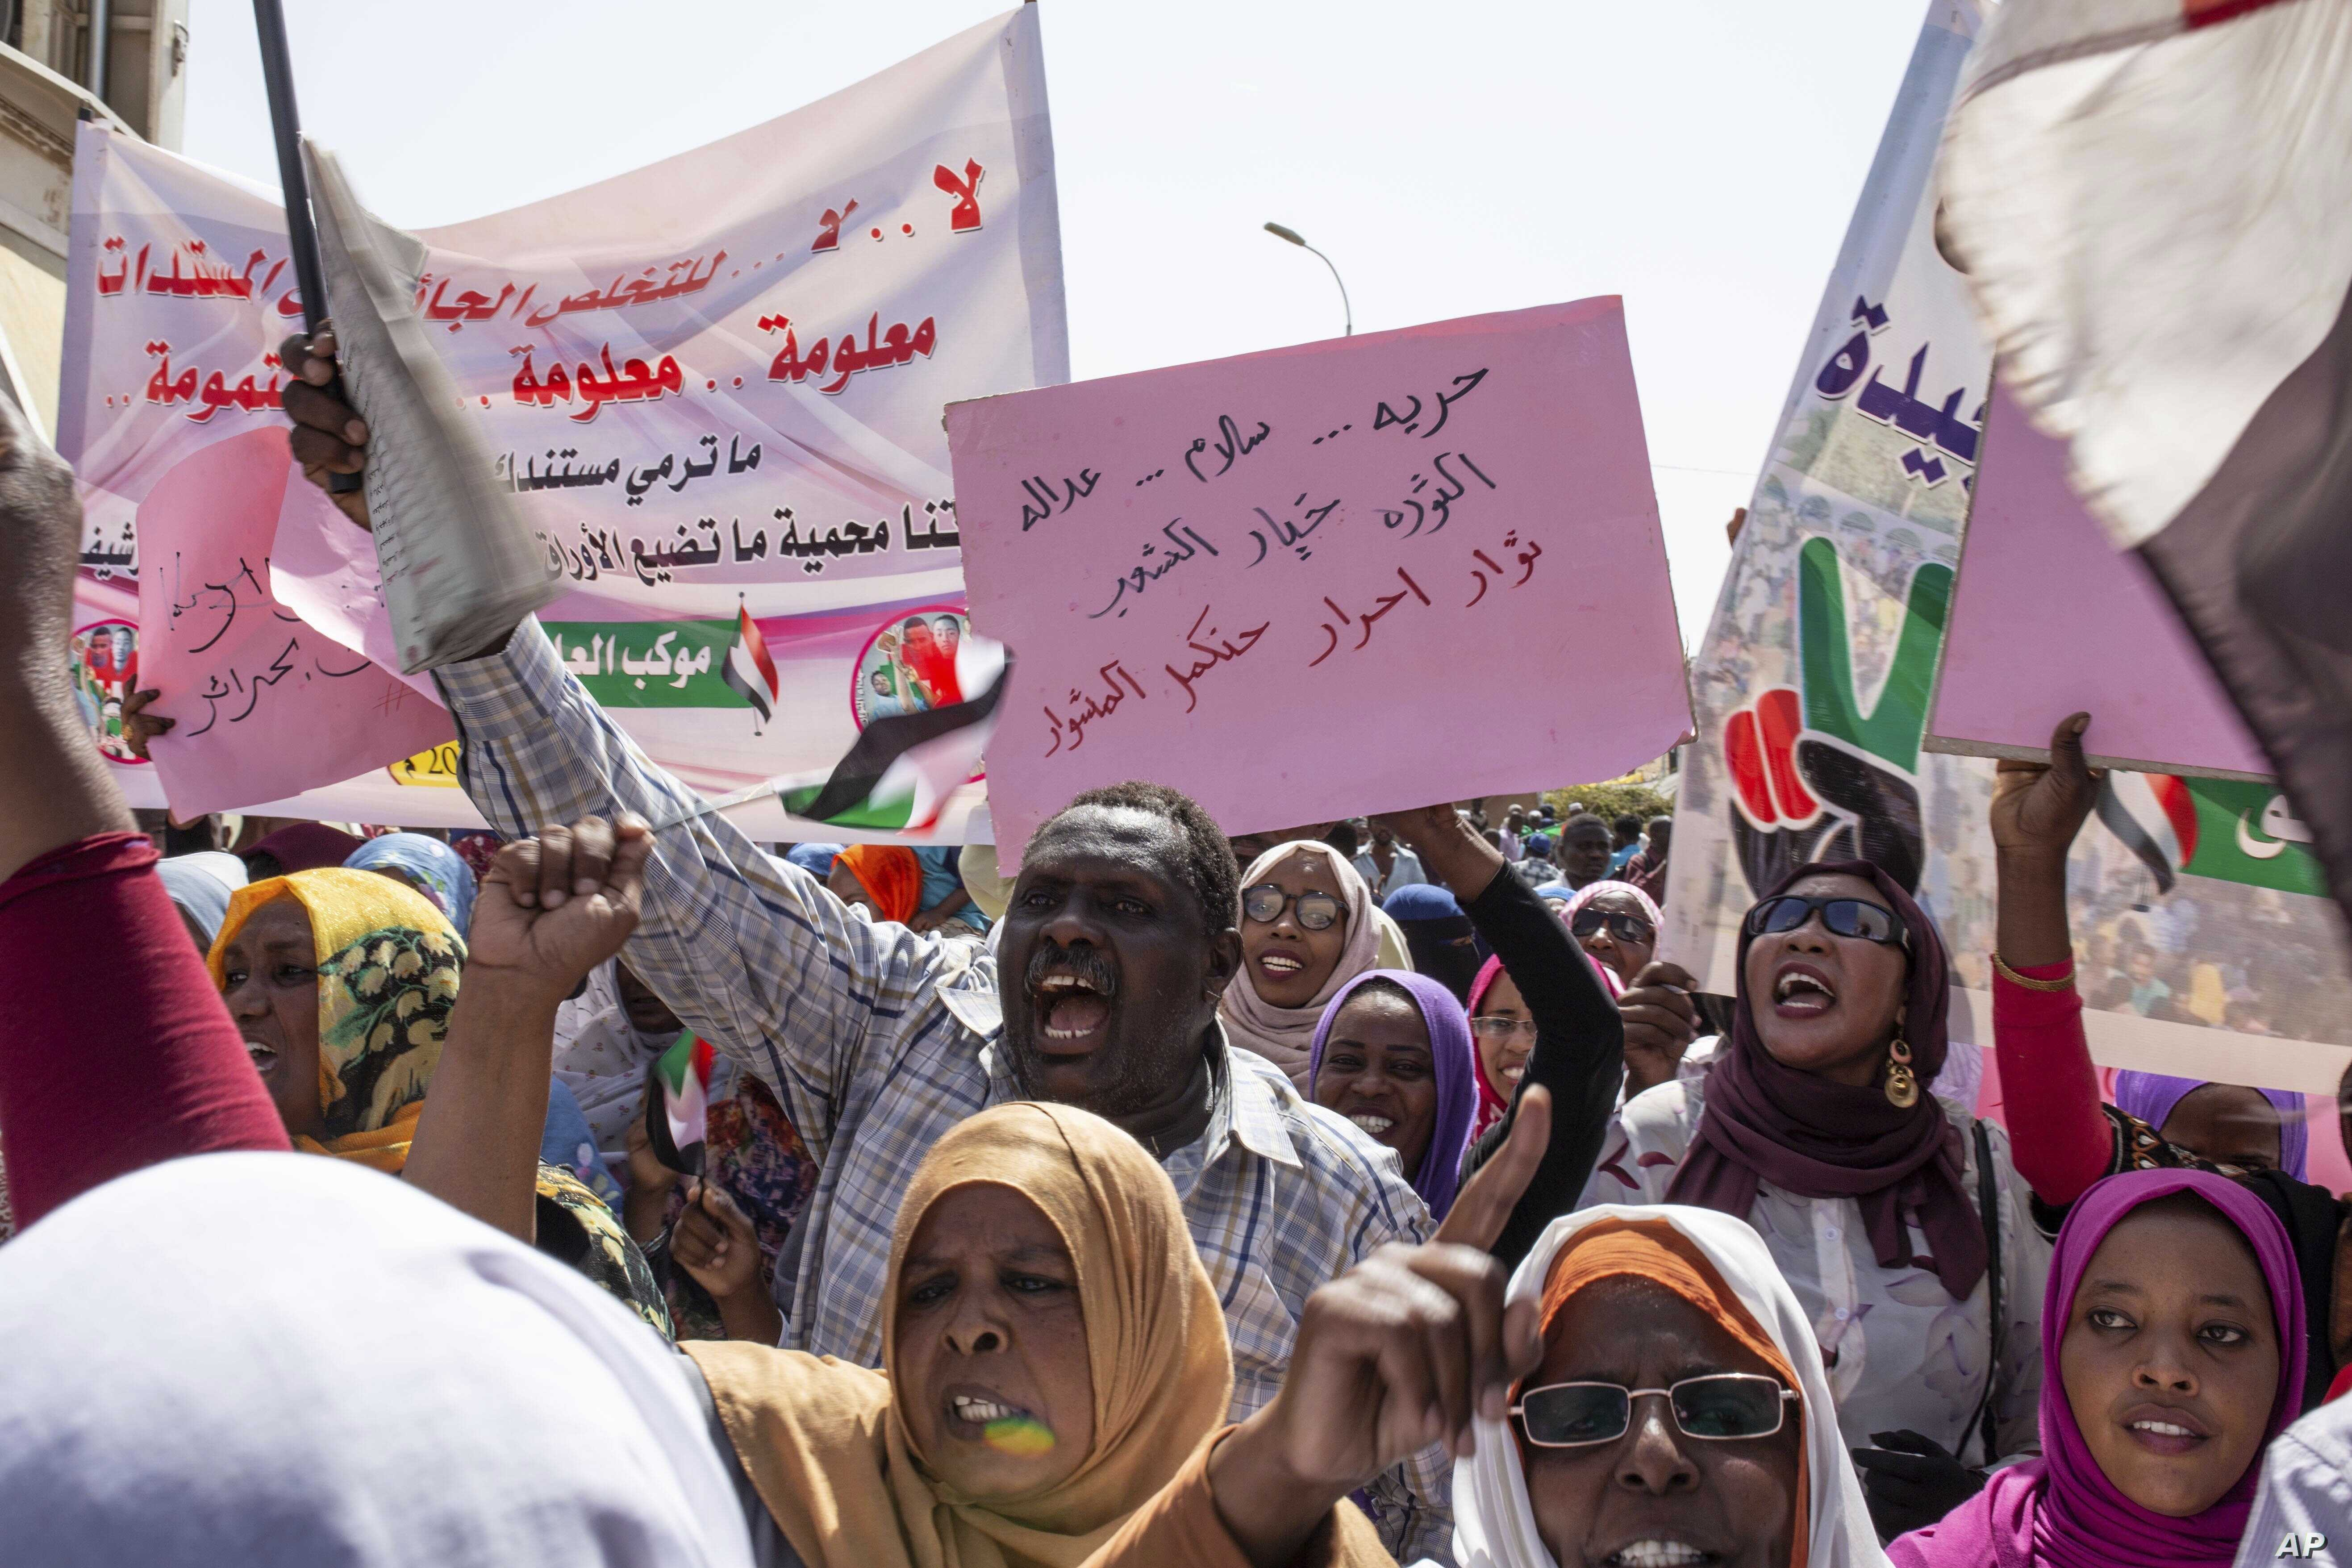 """Protesters carry posters in Arabic that say, """"Freedom, justice, and peace, and the revolution is the choice of the people,"""" at the sit-in outside the military headquarters, in Khartoum, Sudan, May 2, 2019."""